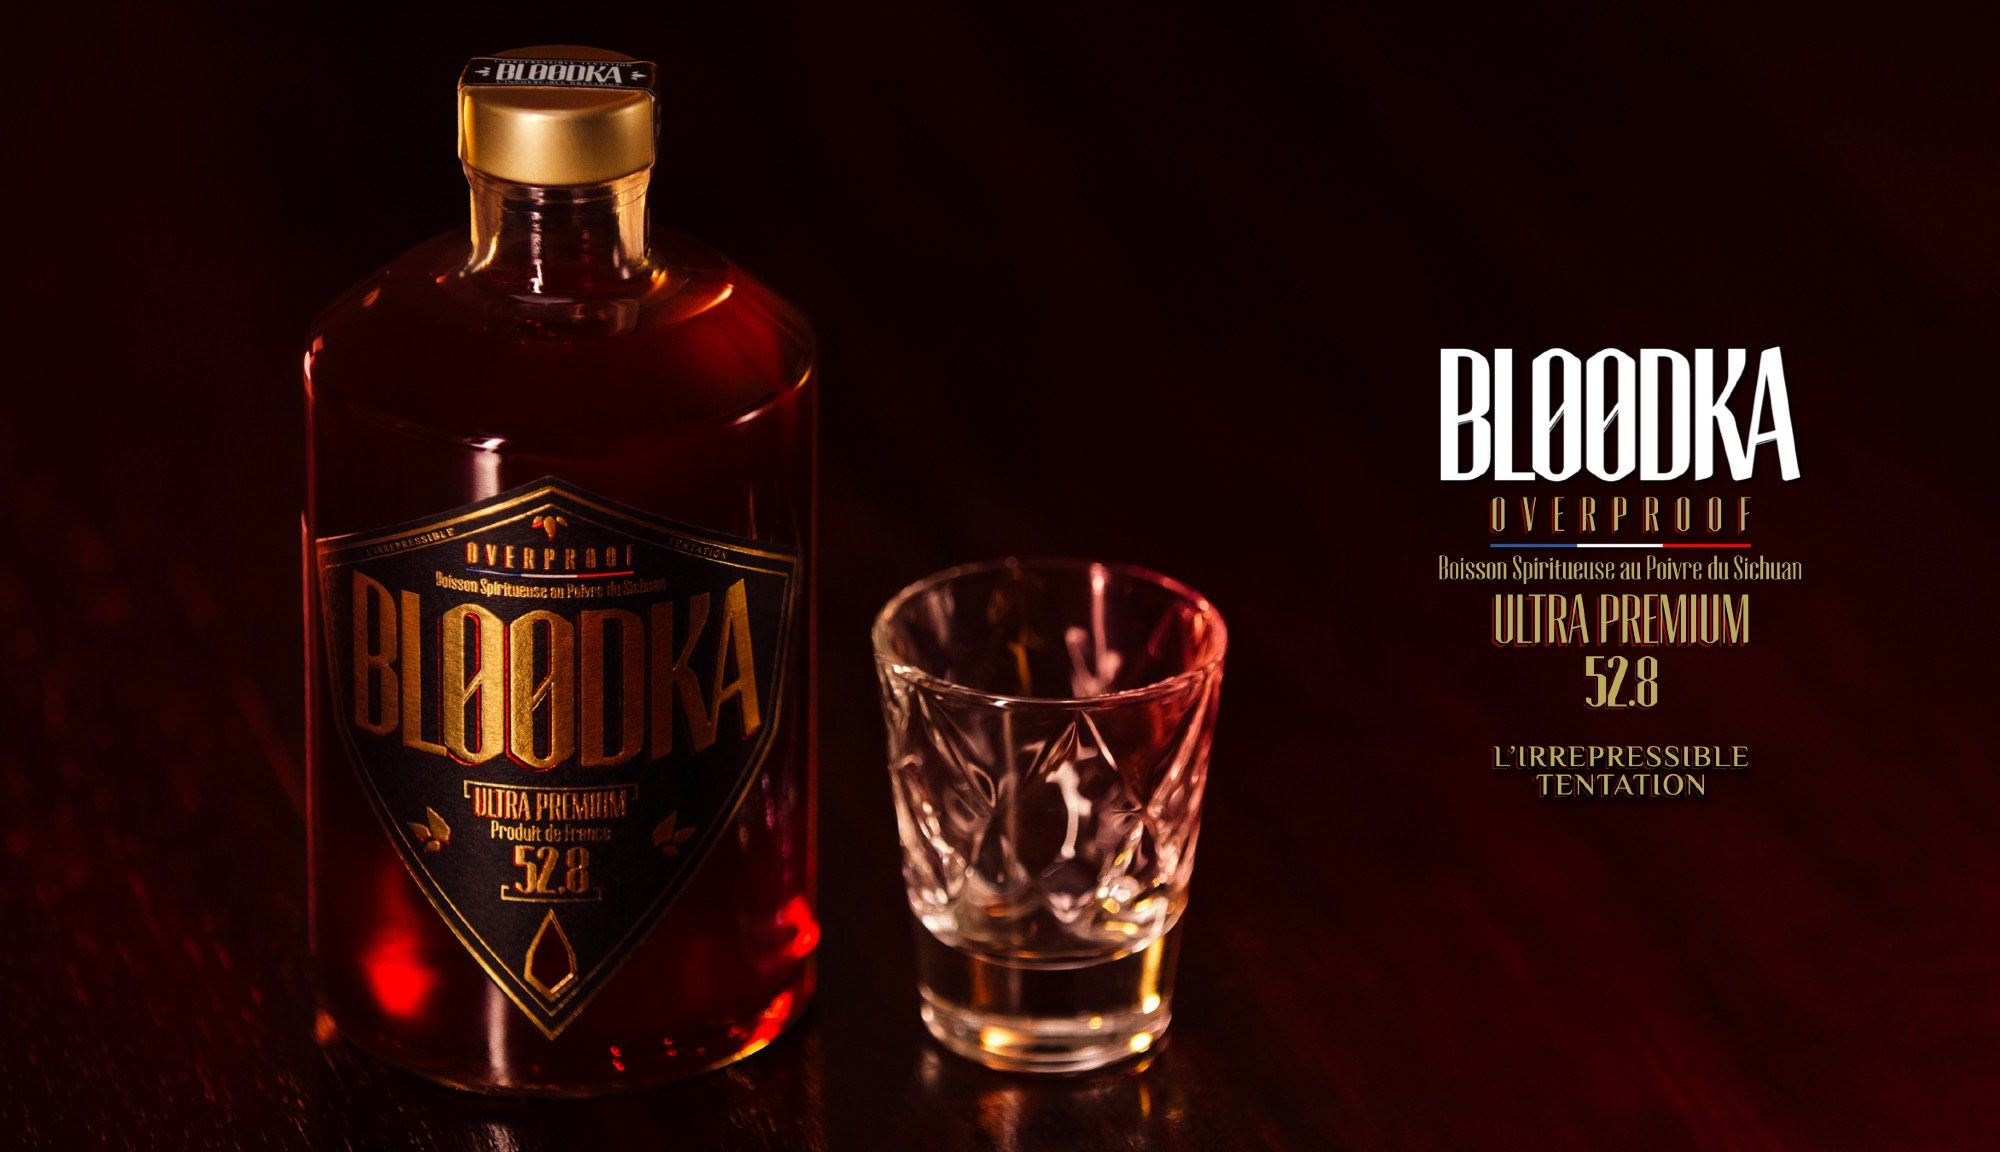 BLOODKA OVERPROOF 52.8 - THE FRENCH SPIRIT MADE IN FRANCE FROM SICHUAN PEPPER - ©ROC CHALIAND